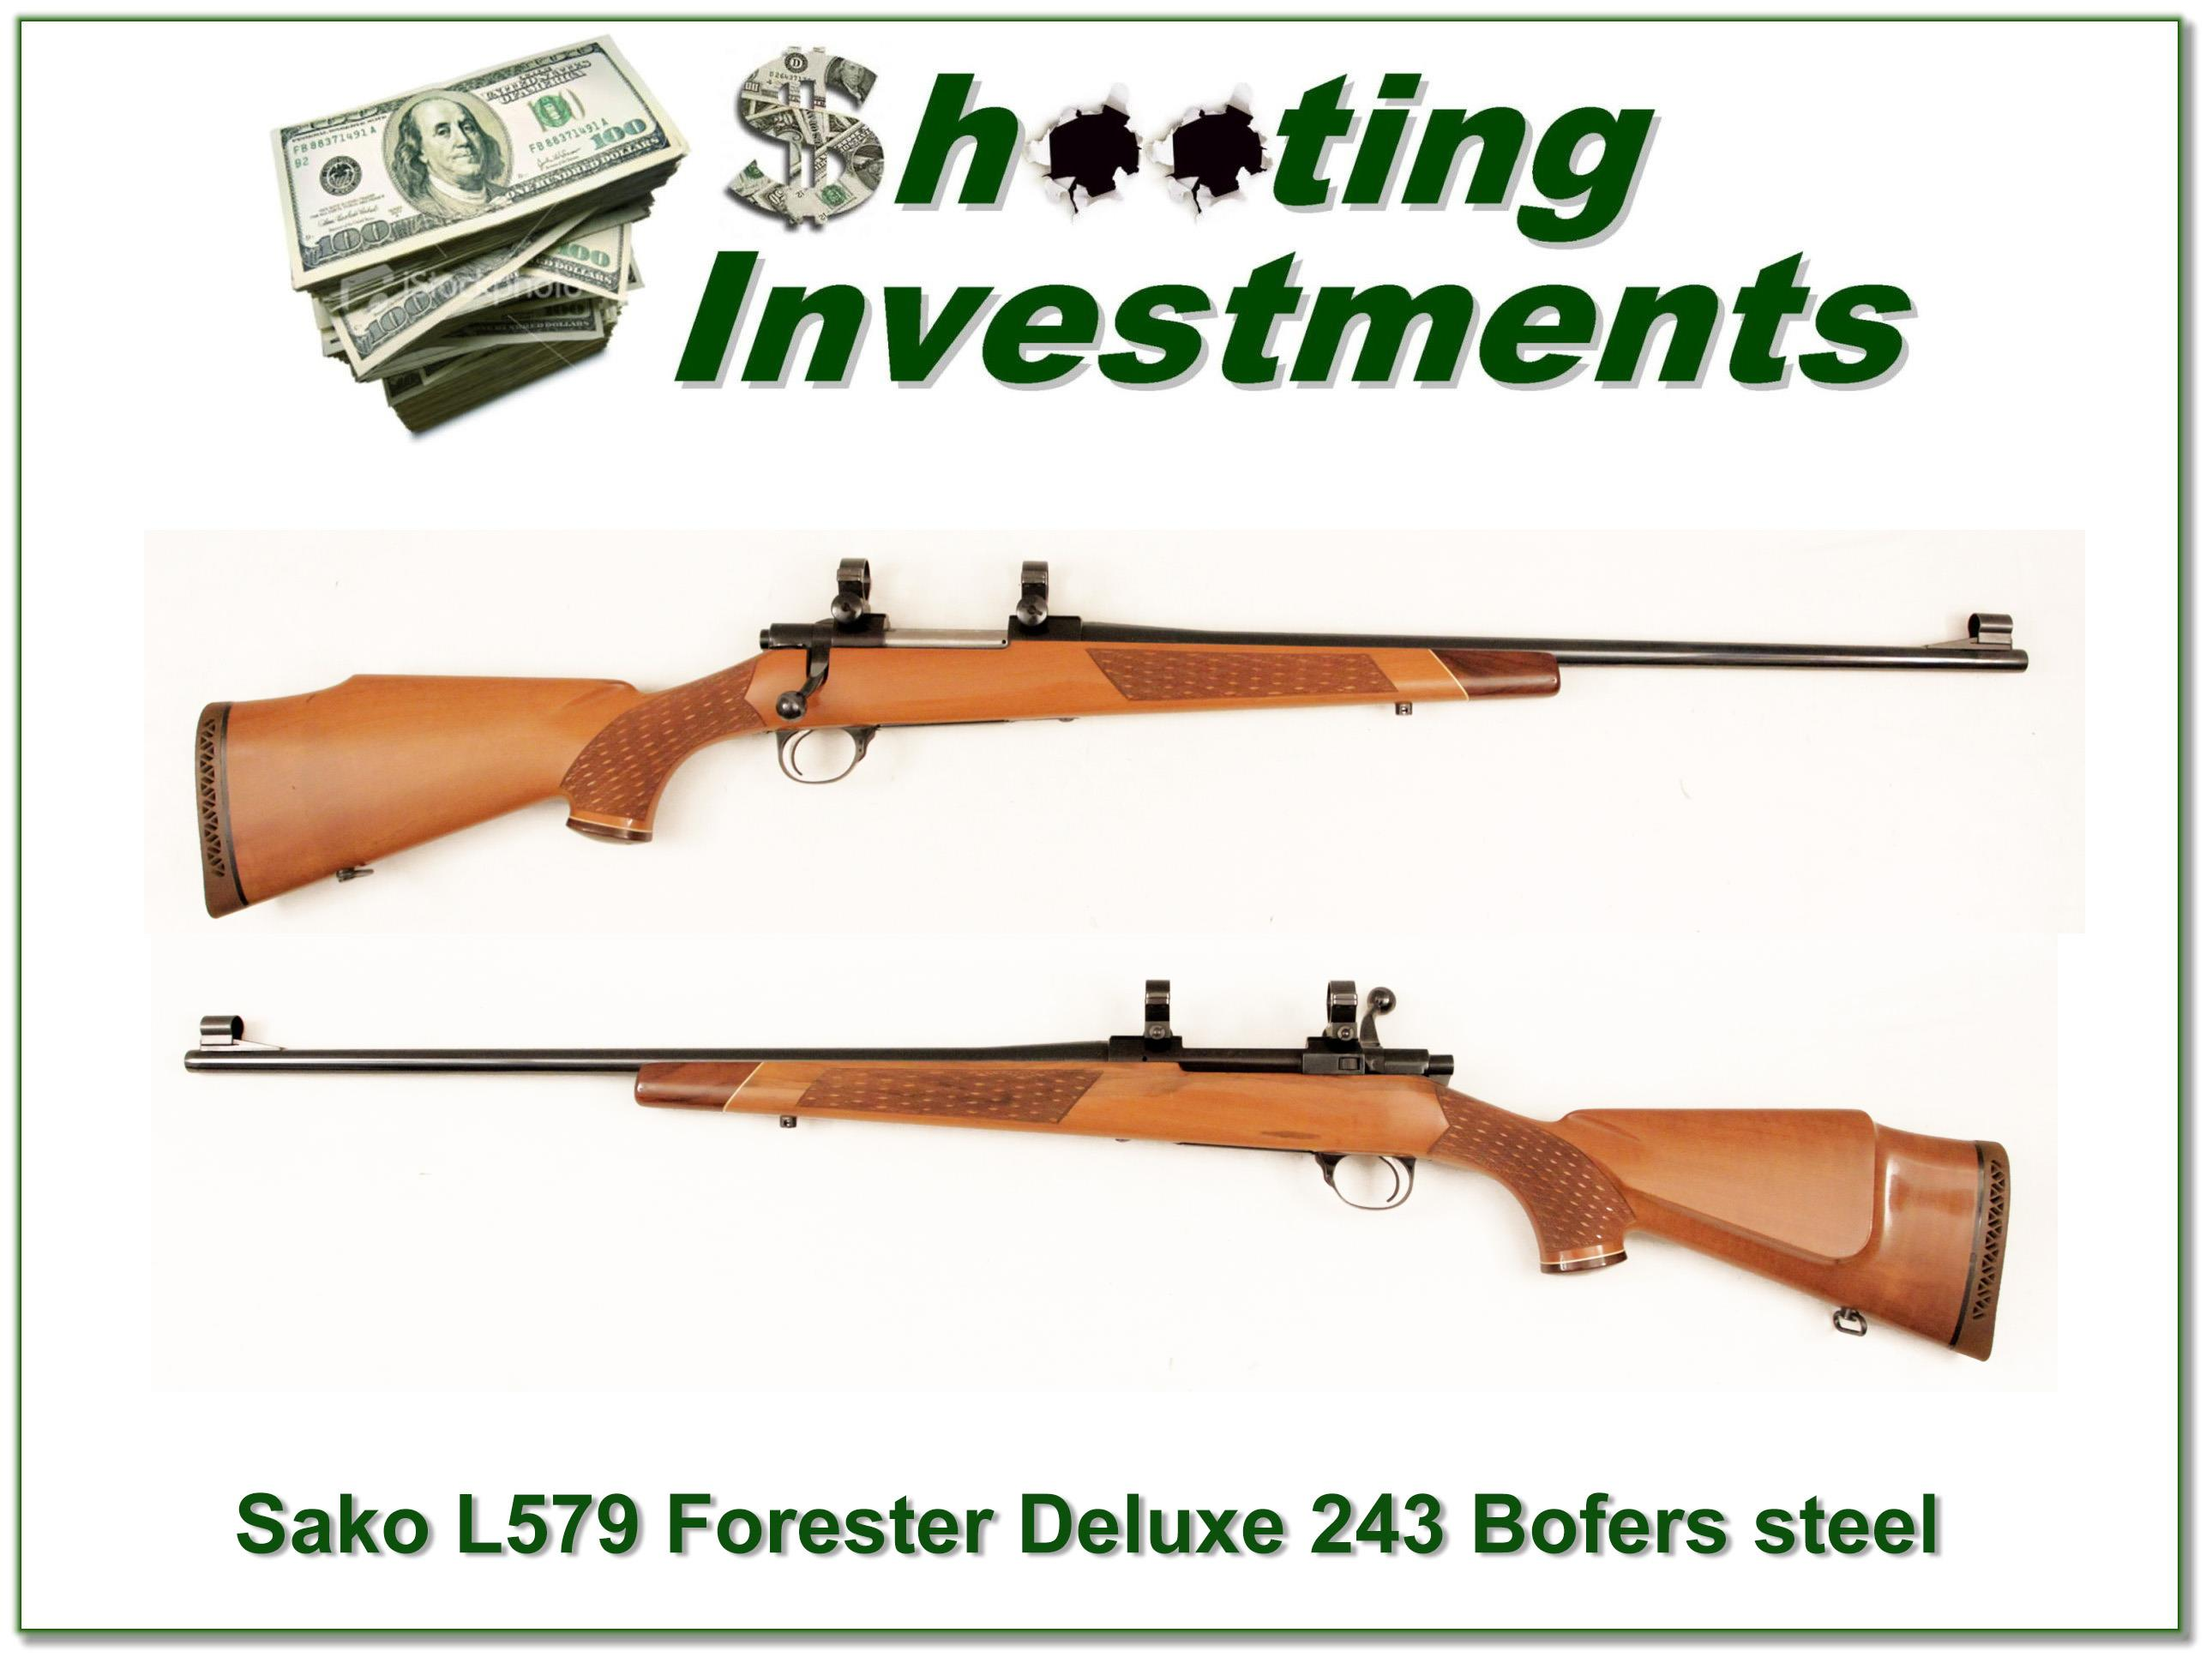 Sako Forester L579 Deluxe Pre-Garcia Bofers Steel 243!  Guns > Rifles > Sako Rifles > Other Bolt Action